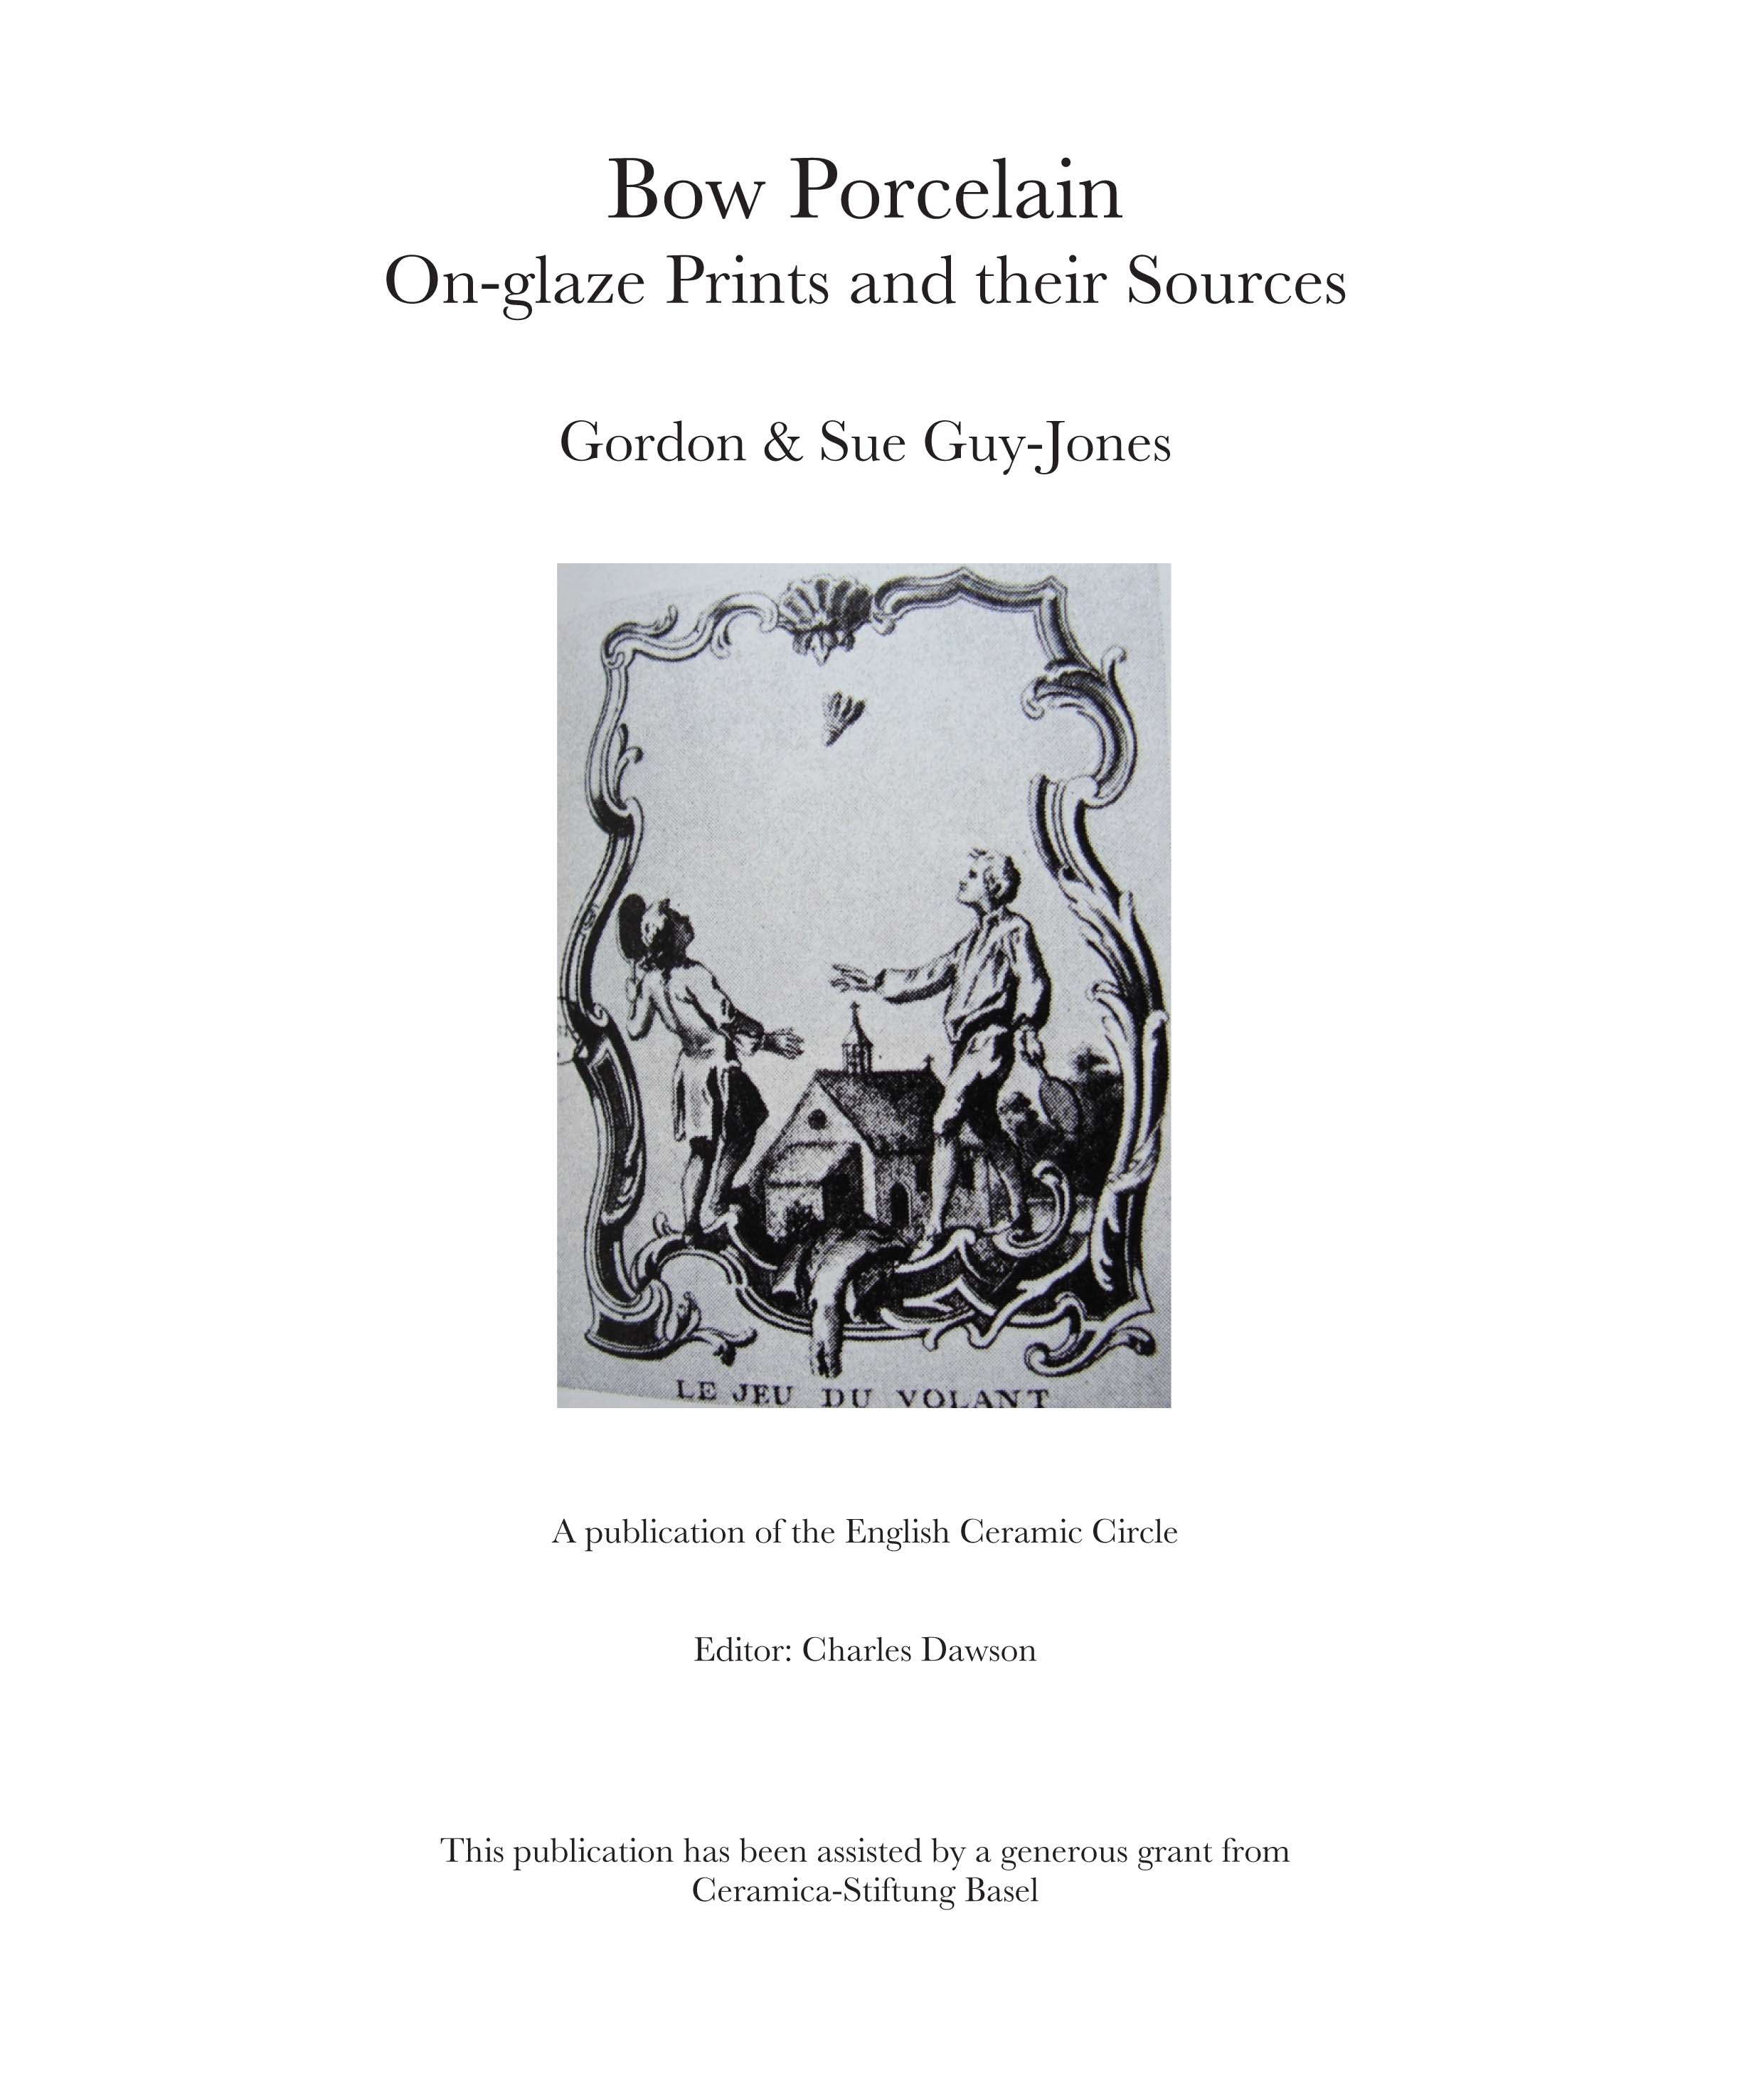 View Bow Porcelain on-glaze Prints and their Sources - Part 1